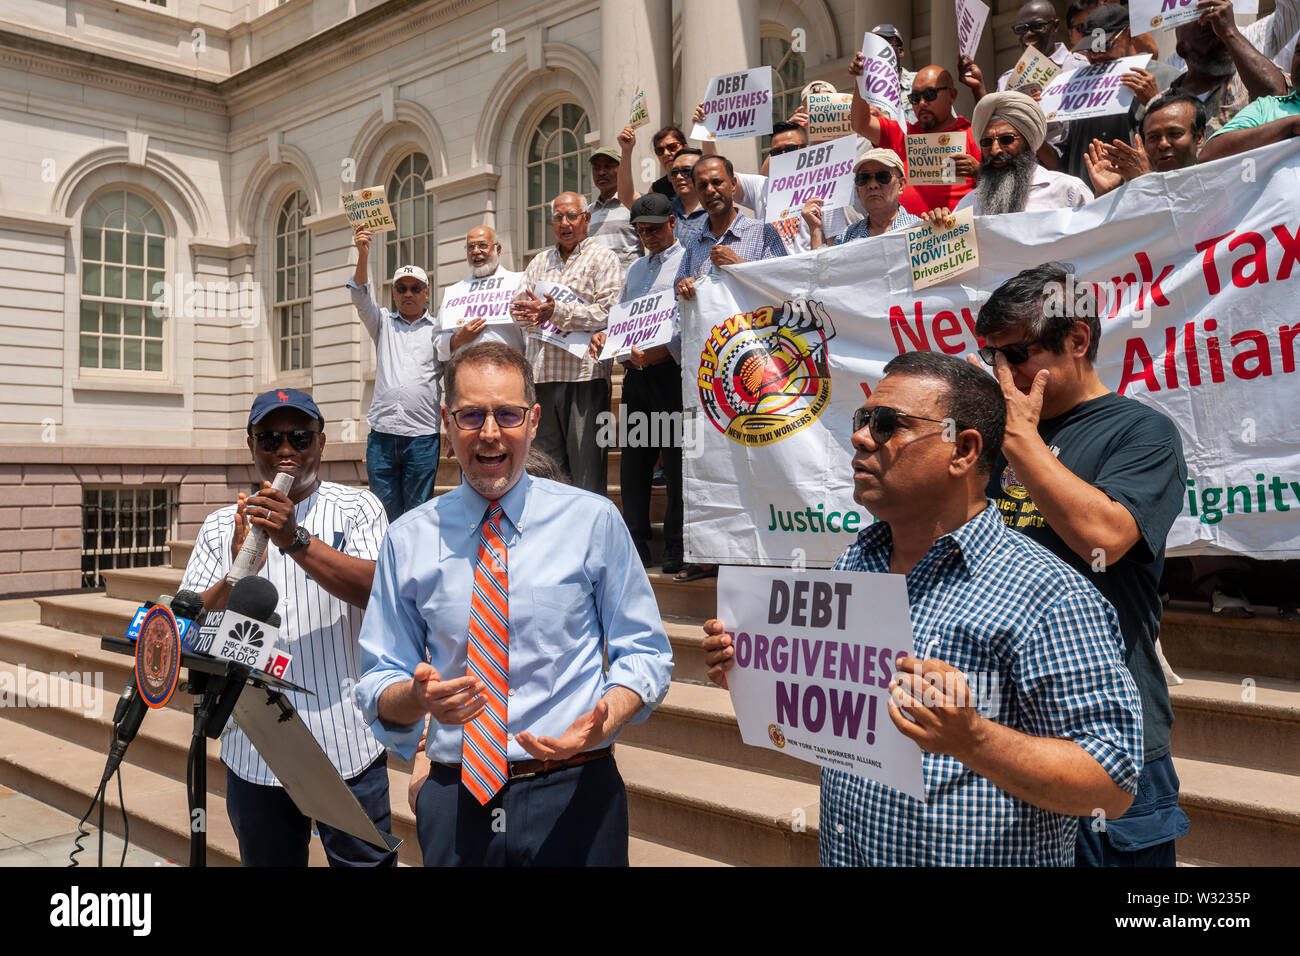 NYC Council Member Mark Levine speaks at a press conference with New York taxi drivers and their supporters on the steps of NY City Hall on Thursday, July 11, 2019  calling for debt forgiveness for their medallion loans. Medallion brokers allegedly took advantage of drivers who bought medallions at artificially inflated prices and ended up burdened with debt. A number of drivers have filed for bankruptcy or are considering it and there have been a few suicides amongst stressed drivers. (© Richard B. Levine) - Stock Image